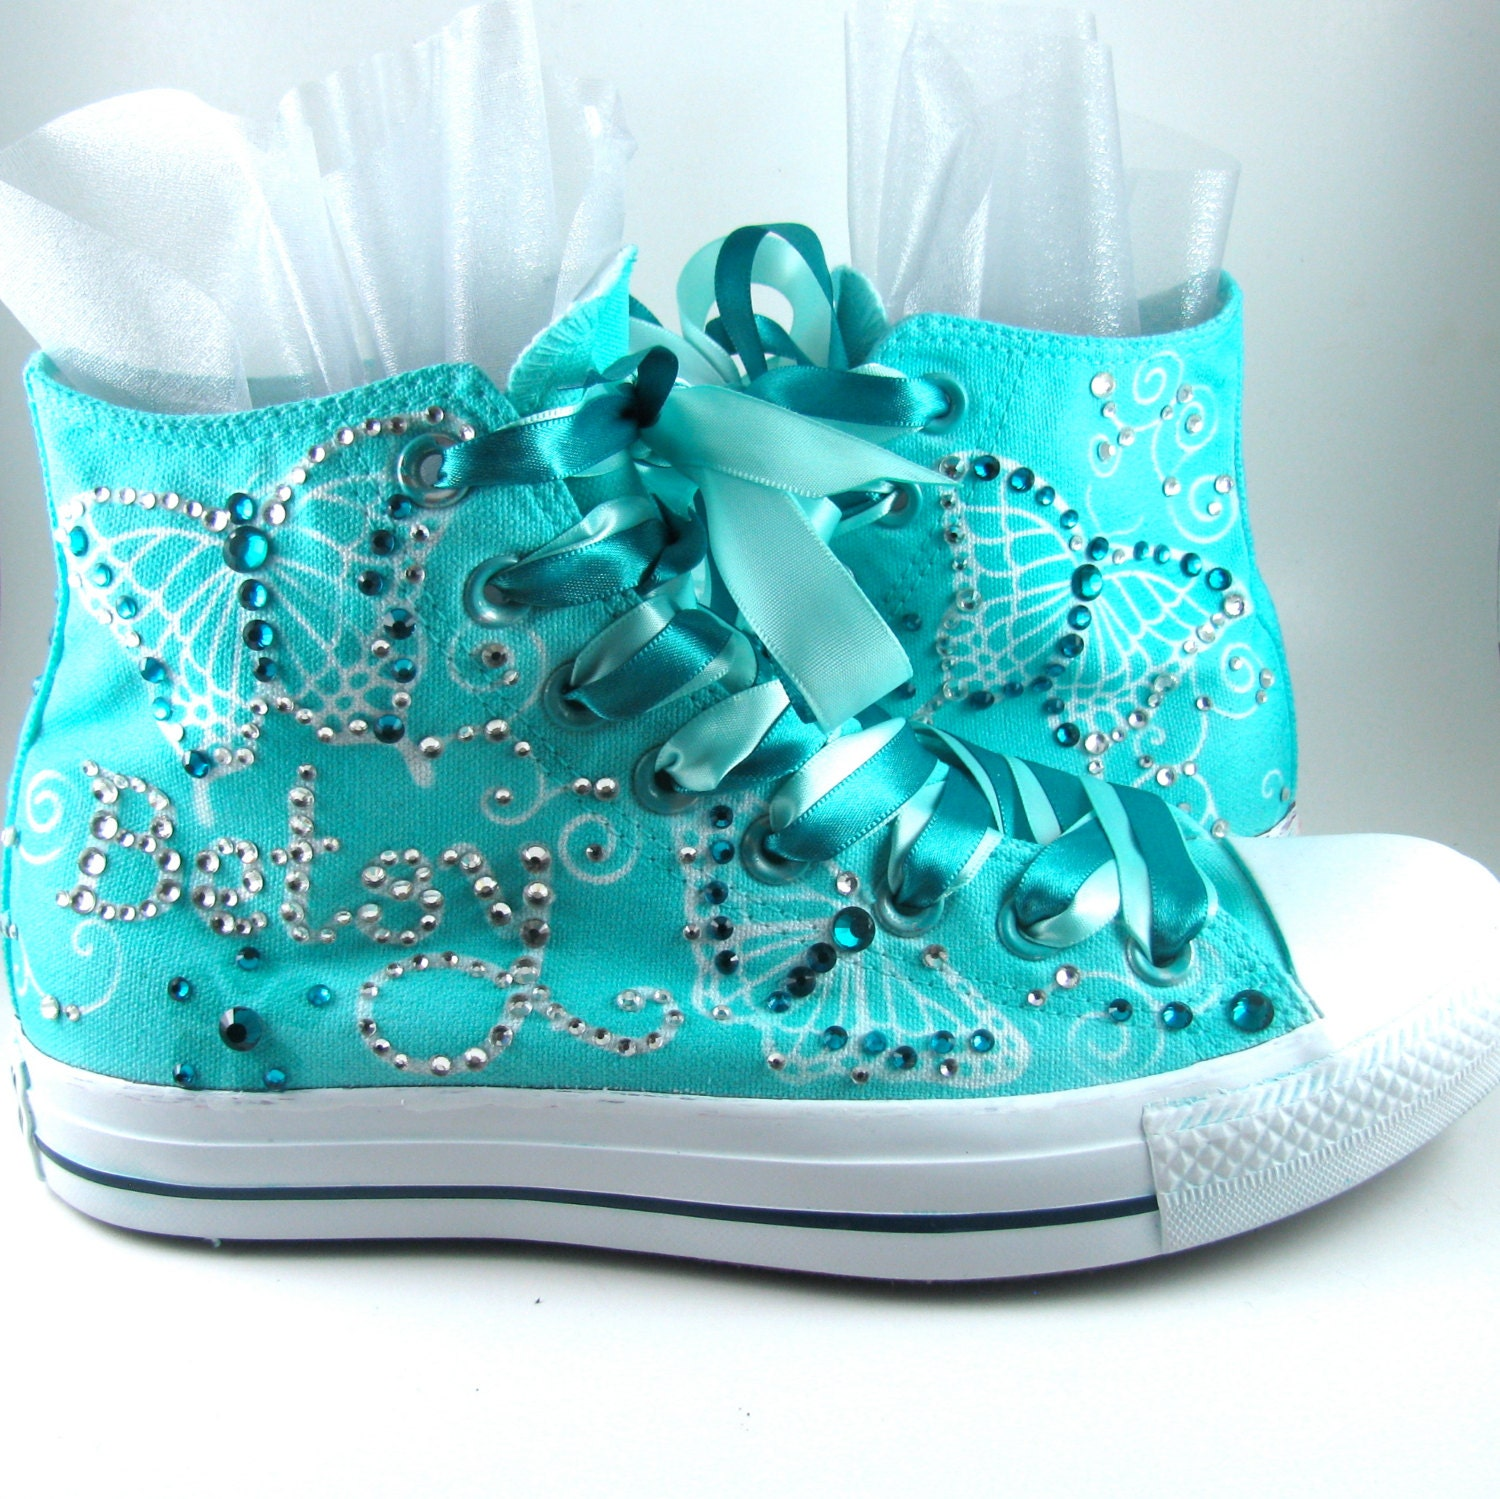 b32c016c09db ... Custom Airbrushed Converse Sneakers ANY color on WHITE by ...  Quinceanera Shoes Converse ...